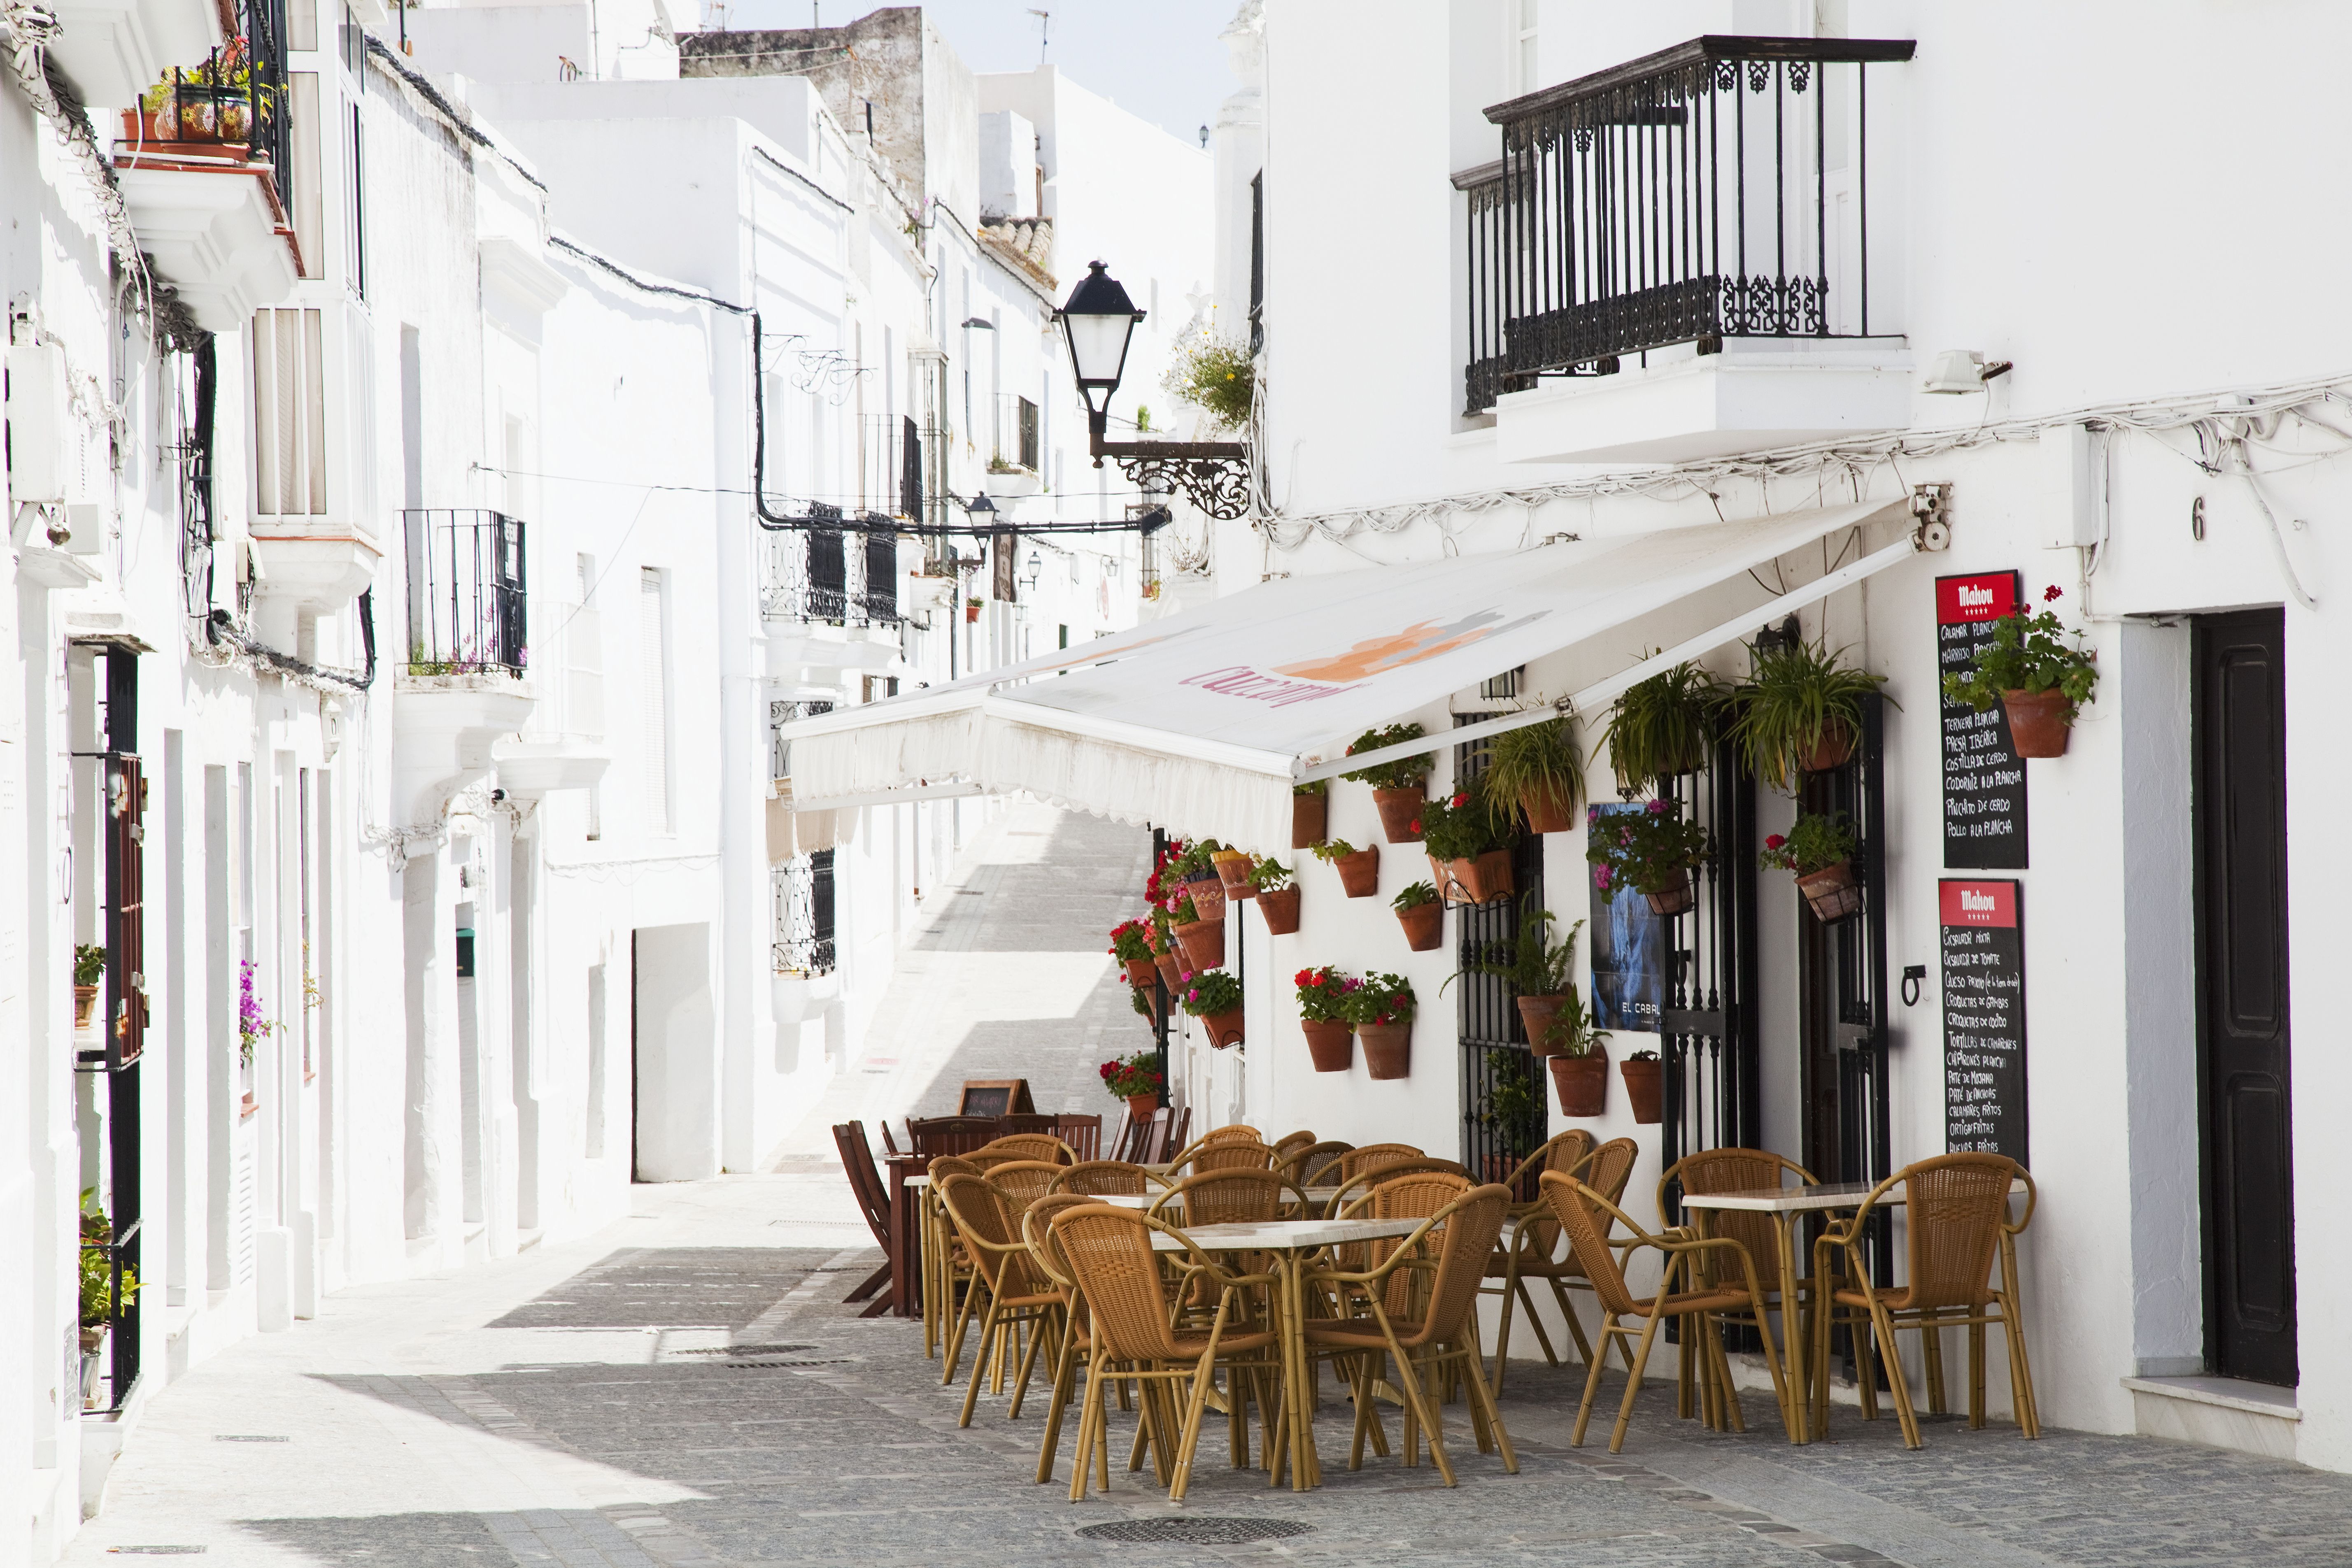 An outdoor restaurant patio and whitewash buildings